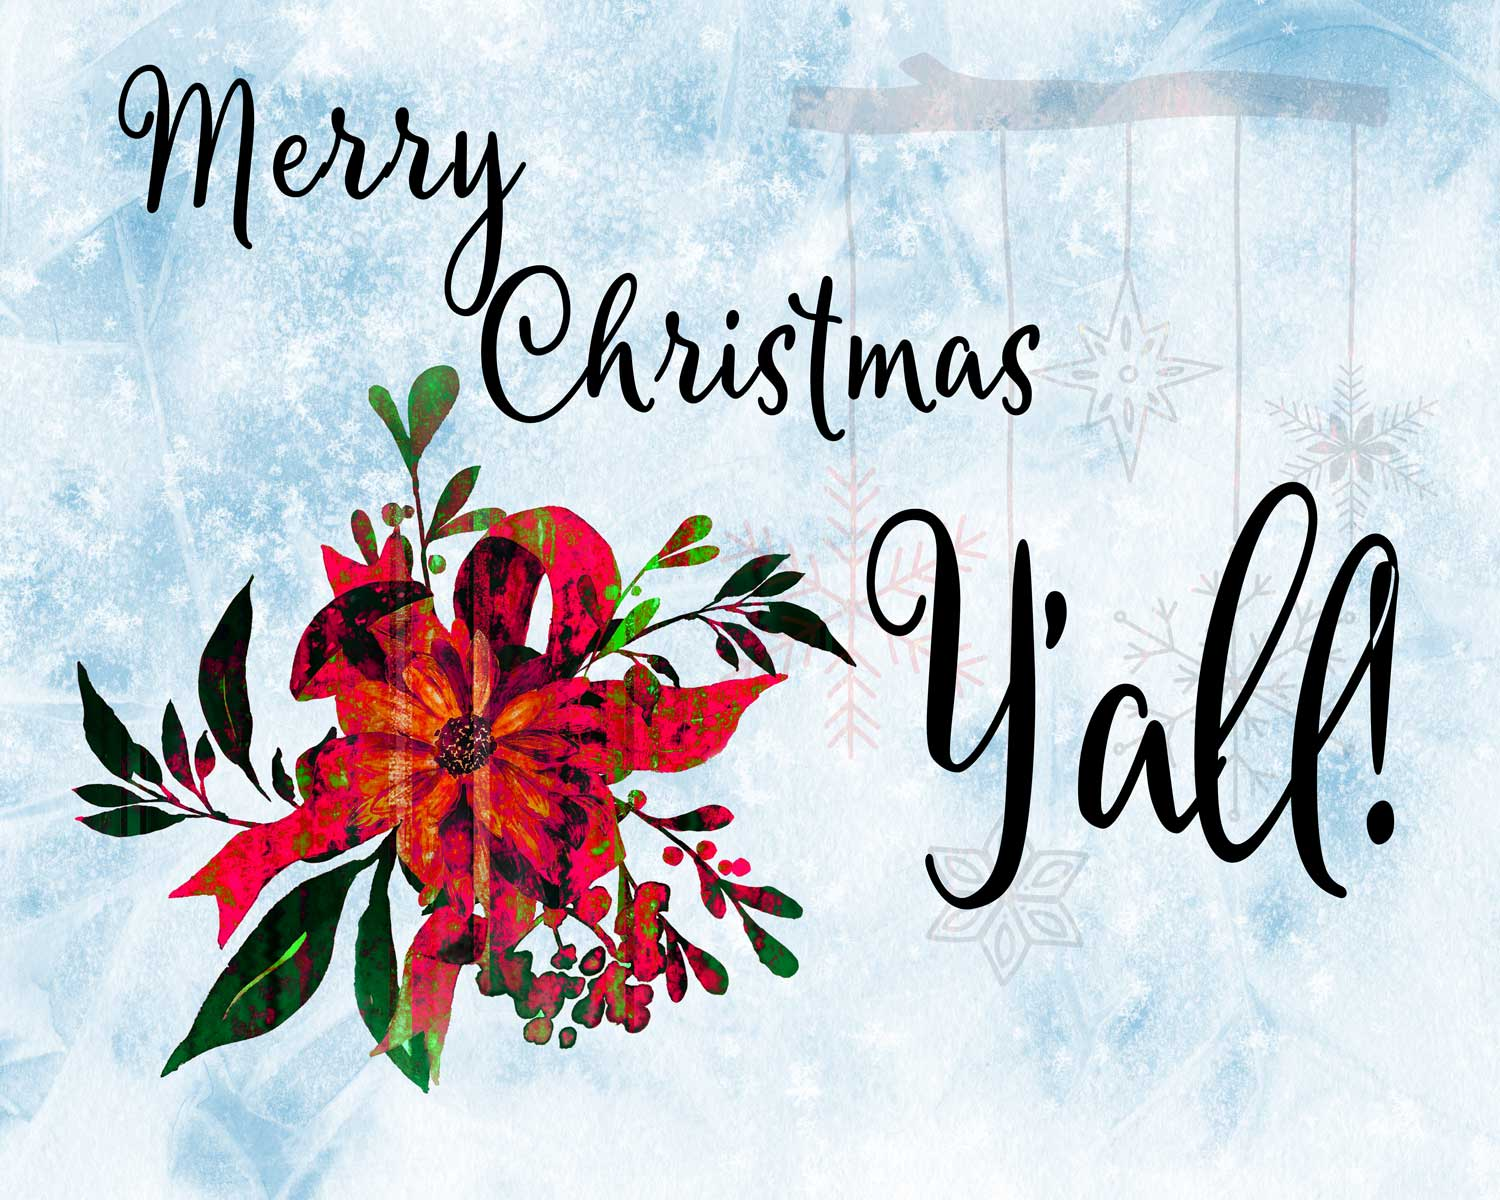 Merry Christmas, Y'all!